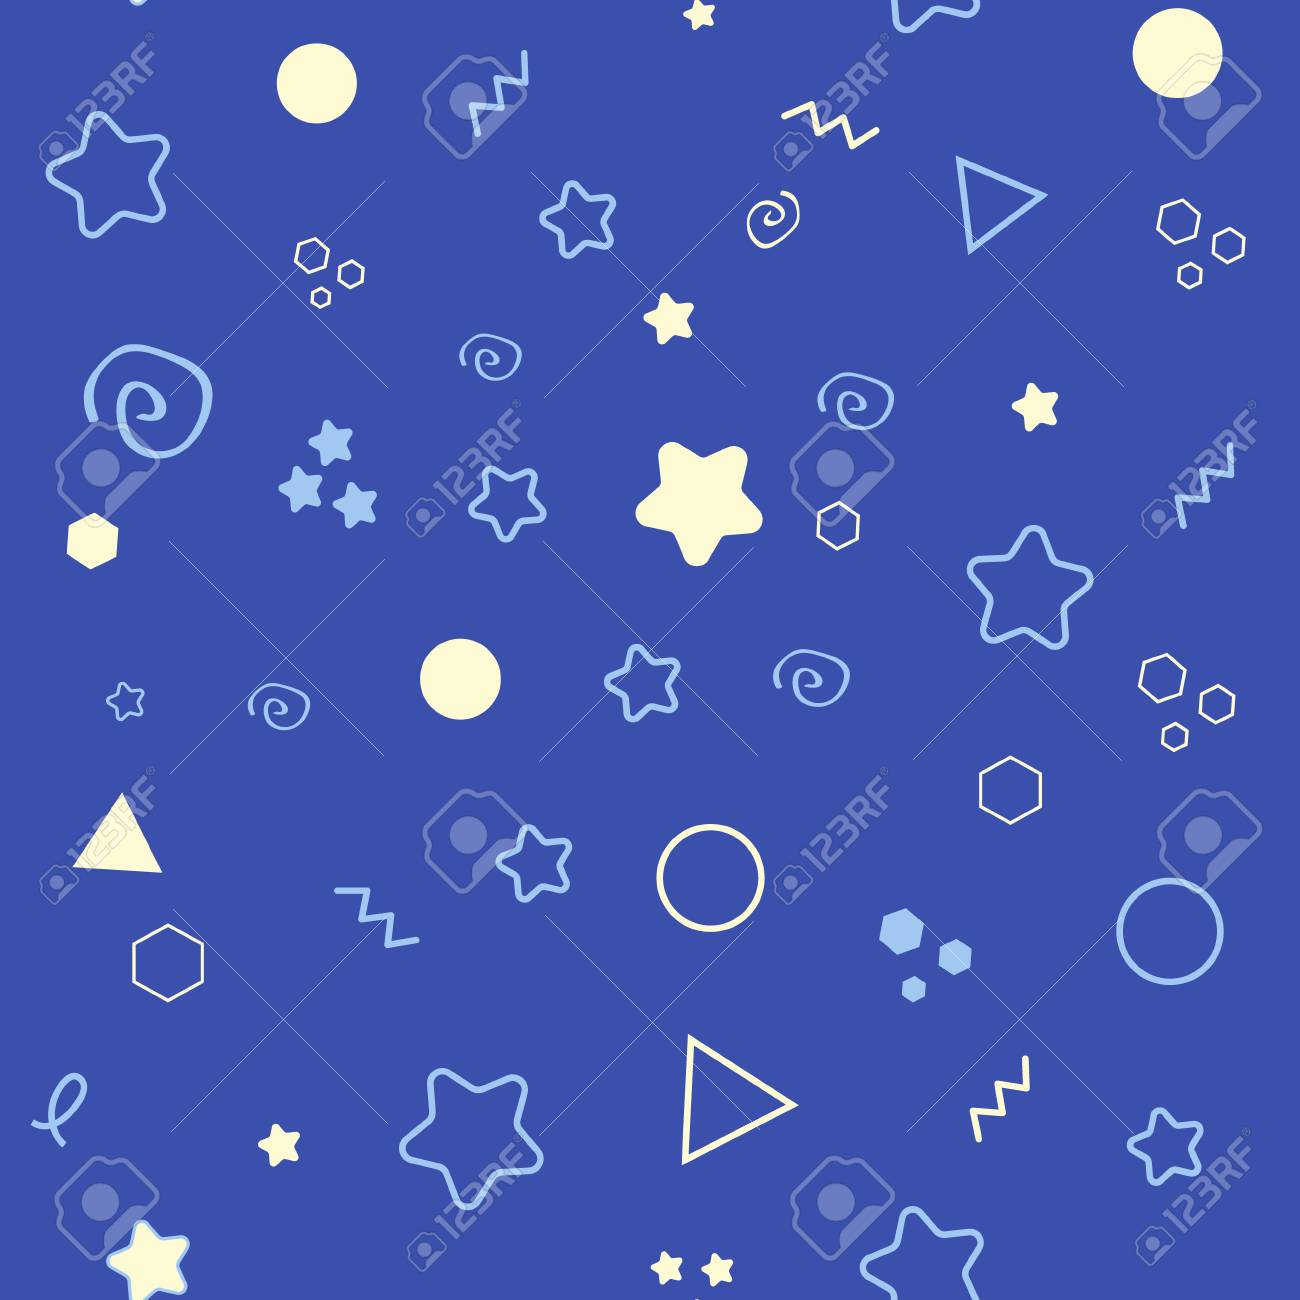 Good Night Seamless Pattern With Cute Sleeping Moon Stars And Clouds Sweet Dreams Background